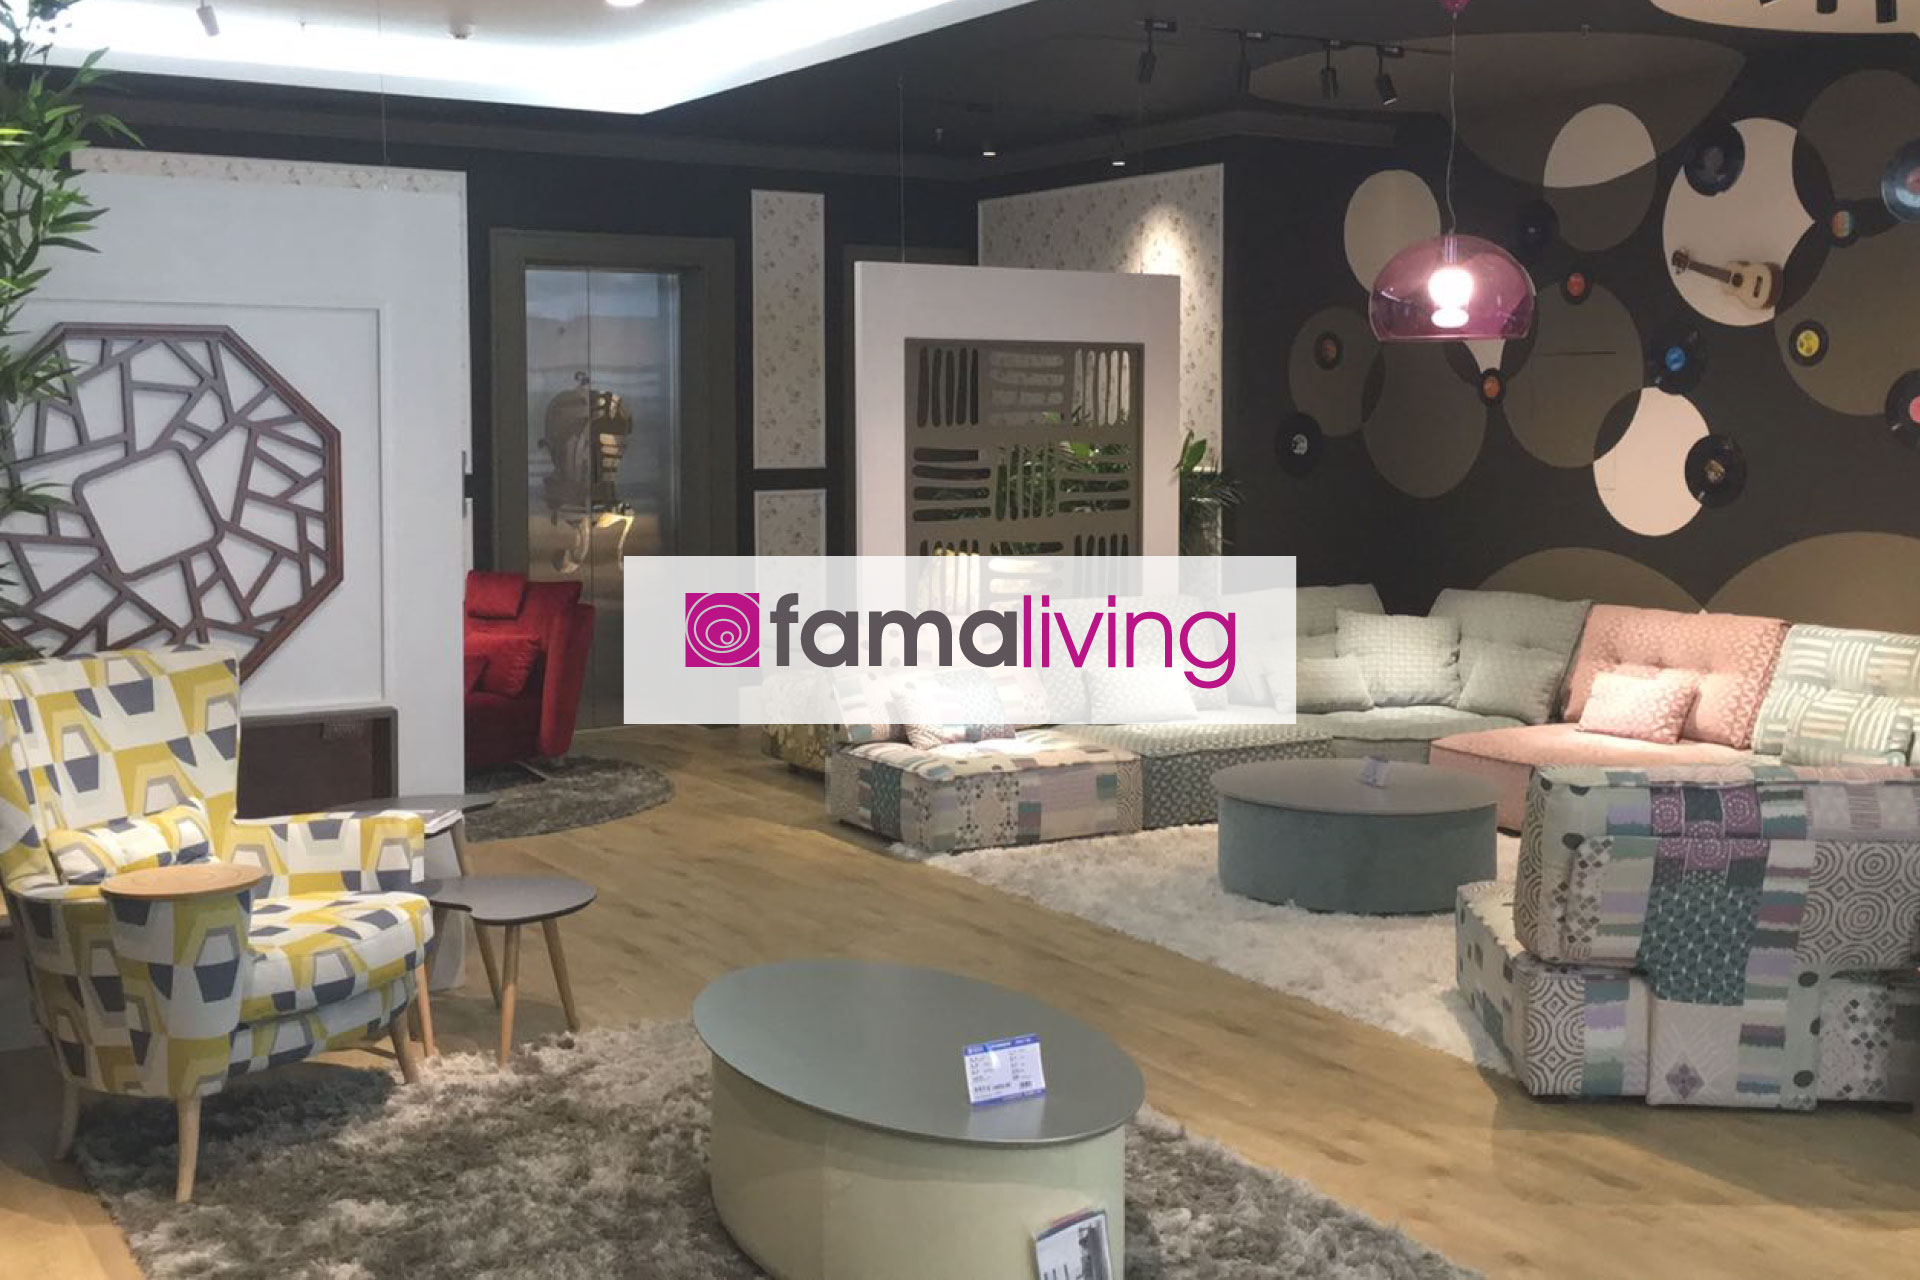 https://www.famaliving.com/beijing-north-en